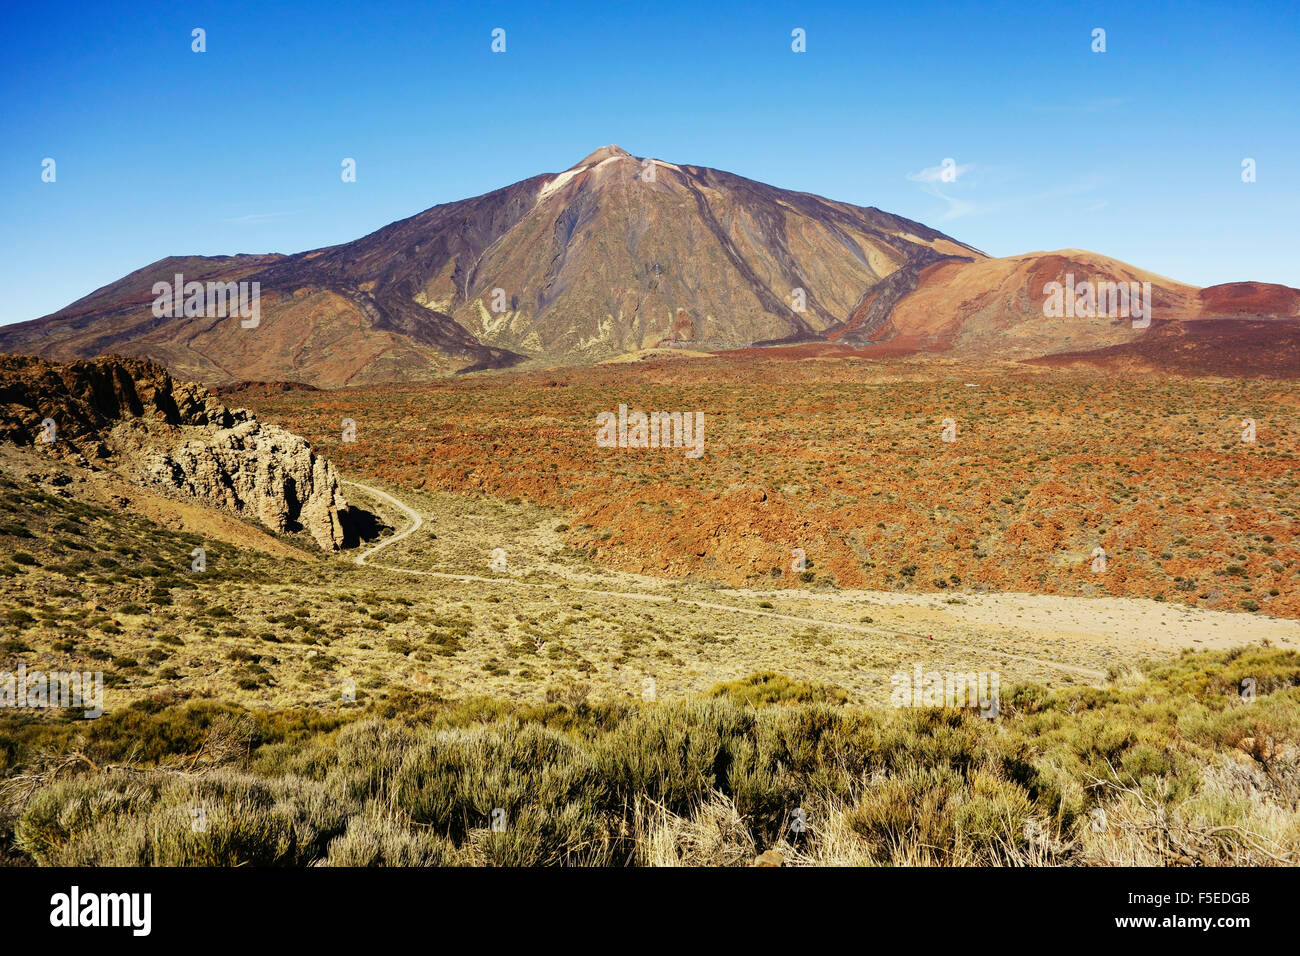 Pico del Teide, Parque Nacional del Teide, UNESCO World Heritage Site, Tenerife, Canary Islands, Spain, Europe - Stock Image